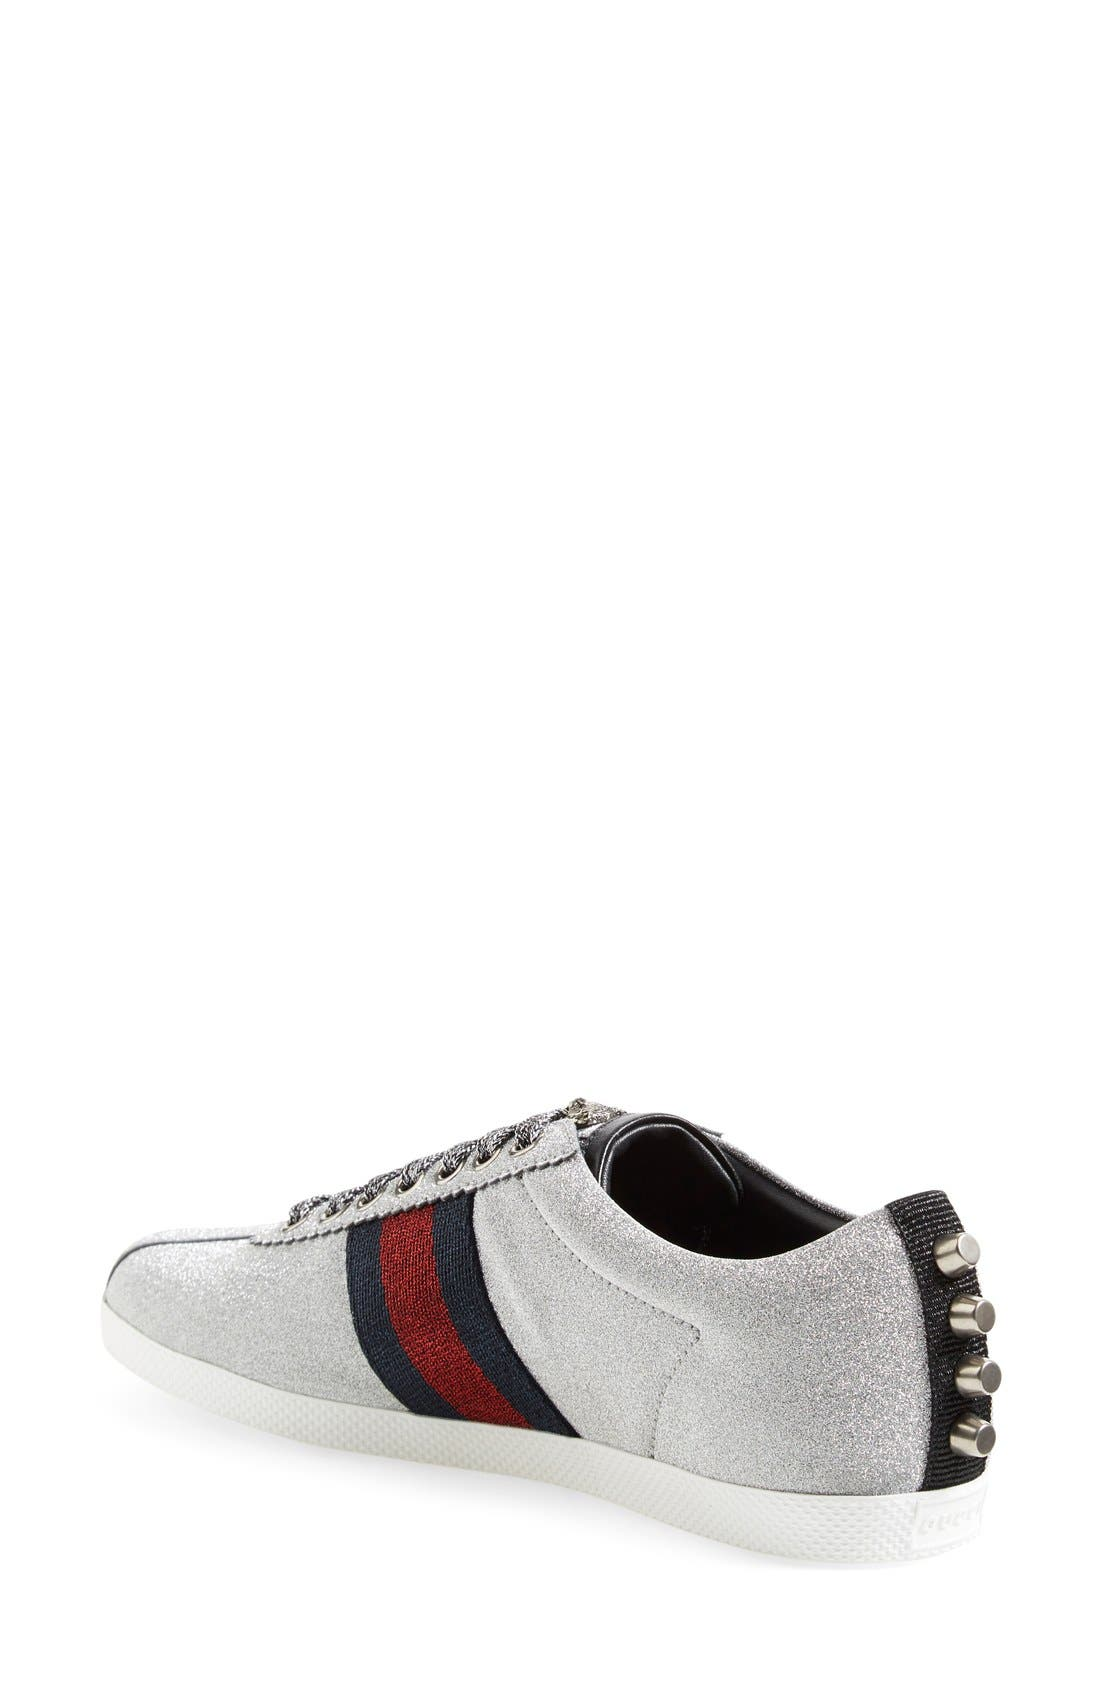 Lace-Up Sneaker,                             Alternate thumbnail 4, color,                             040